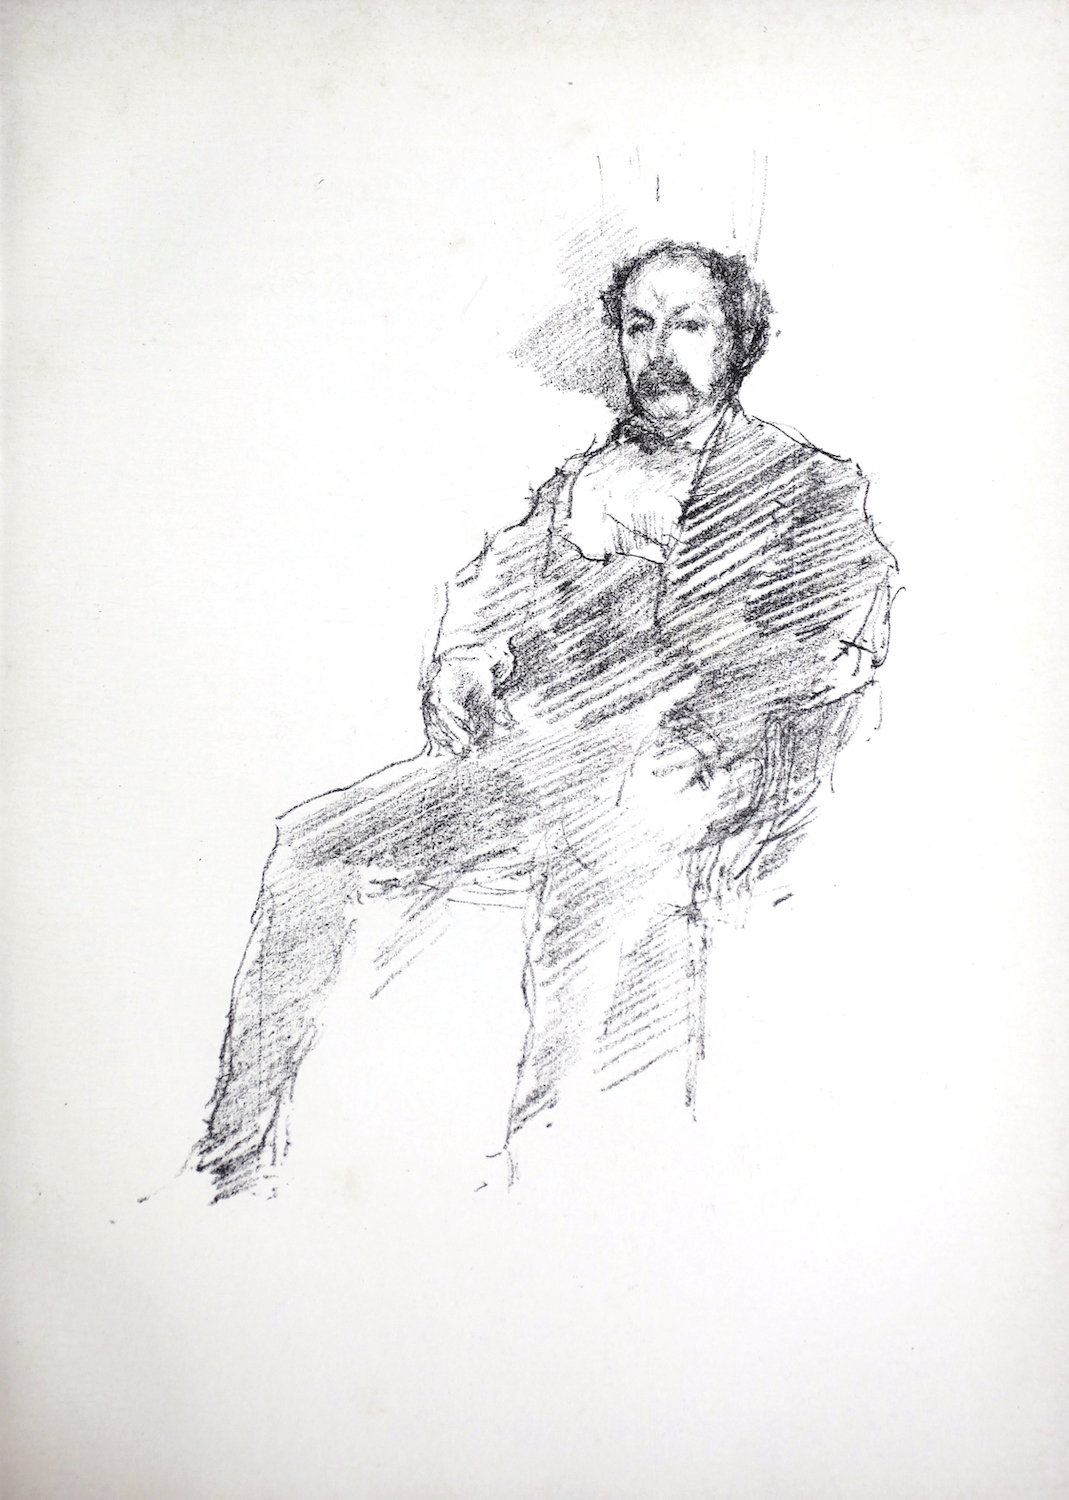 The unframed image, which features a man sitting on a chair and looking forward, has no background detail. The man is positioned off centre, with his back on the right side of the image and his feet pointing to the left. The man is wearing a suit, but the details are intentionally vague, sketched roughly by the artist. His right hand is visible on his lap, but the fingers on his left hand are not drawn, and his legs are likewise left unfinished, without feet. The man has a mustache, thick hair on the sides of his head and thinning hair on the crown. No setting is provided. The title indicates that the portrait is of the artist's brother, Dr. William McNeil Whistler (1836-1900).